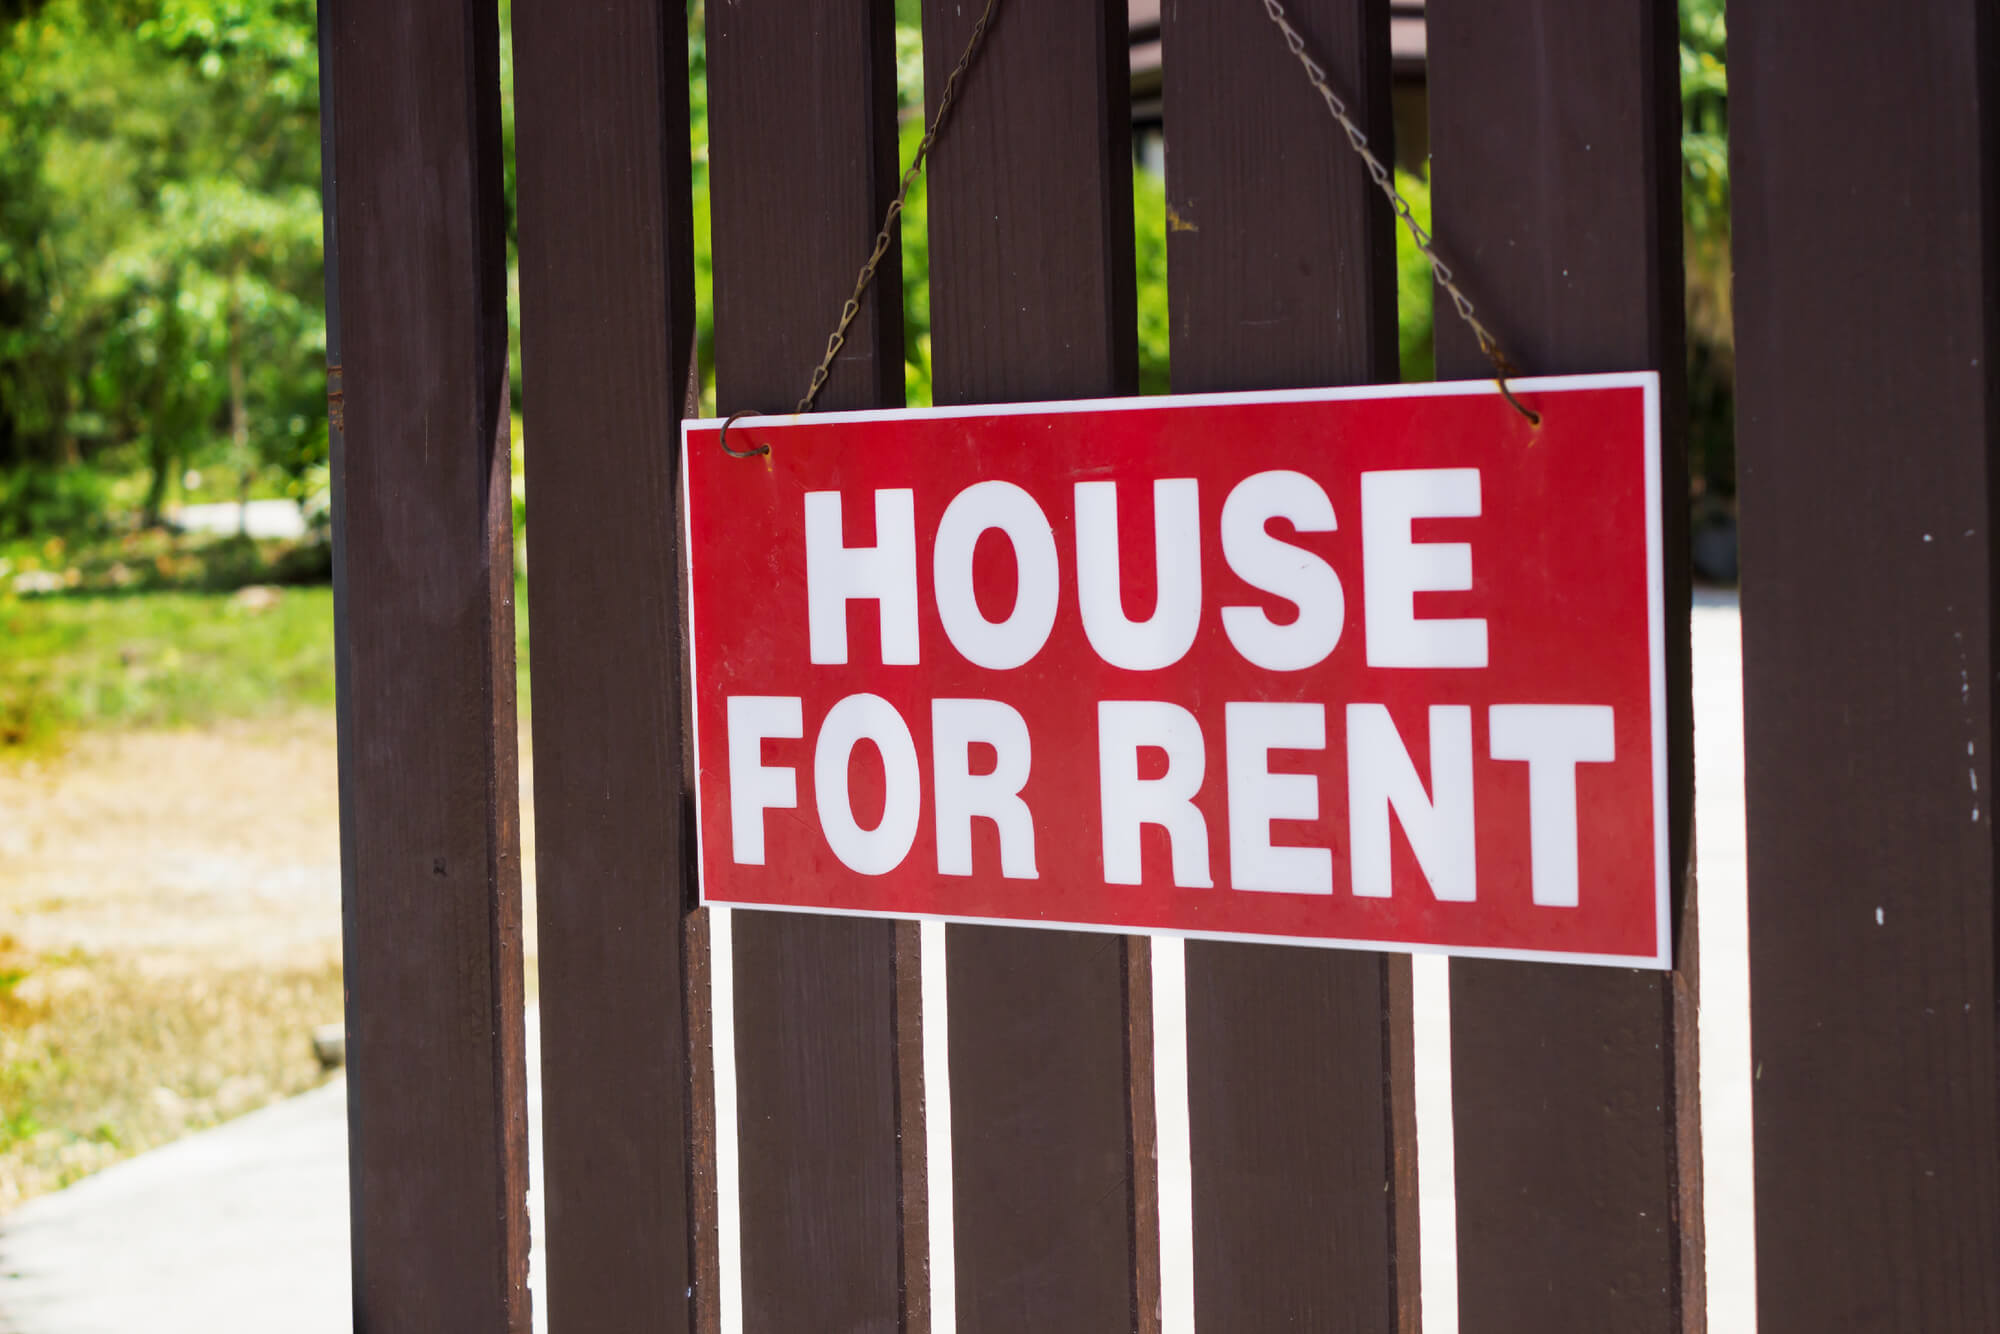 How to Find Good Tenants: Be honest with prospective tenants upfront.